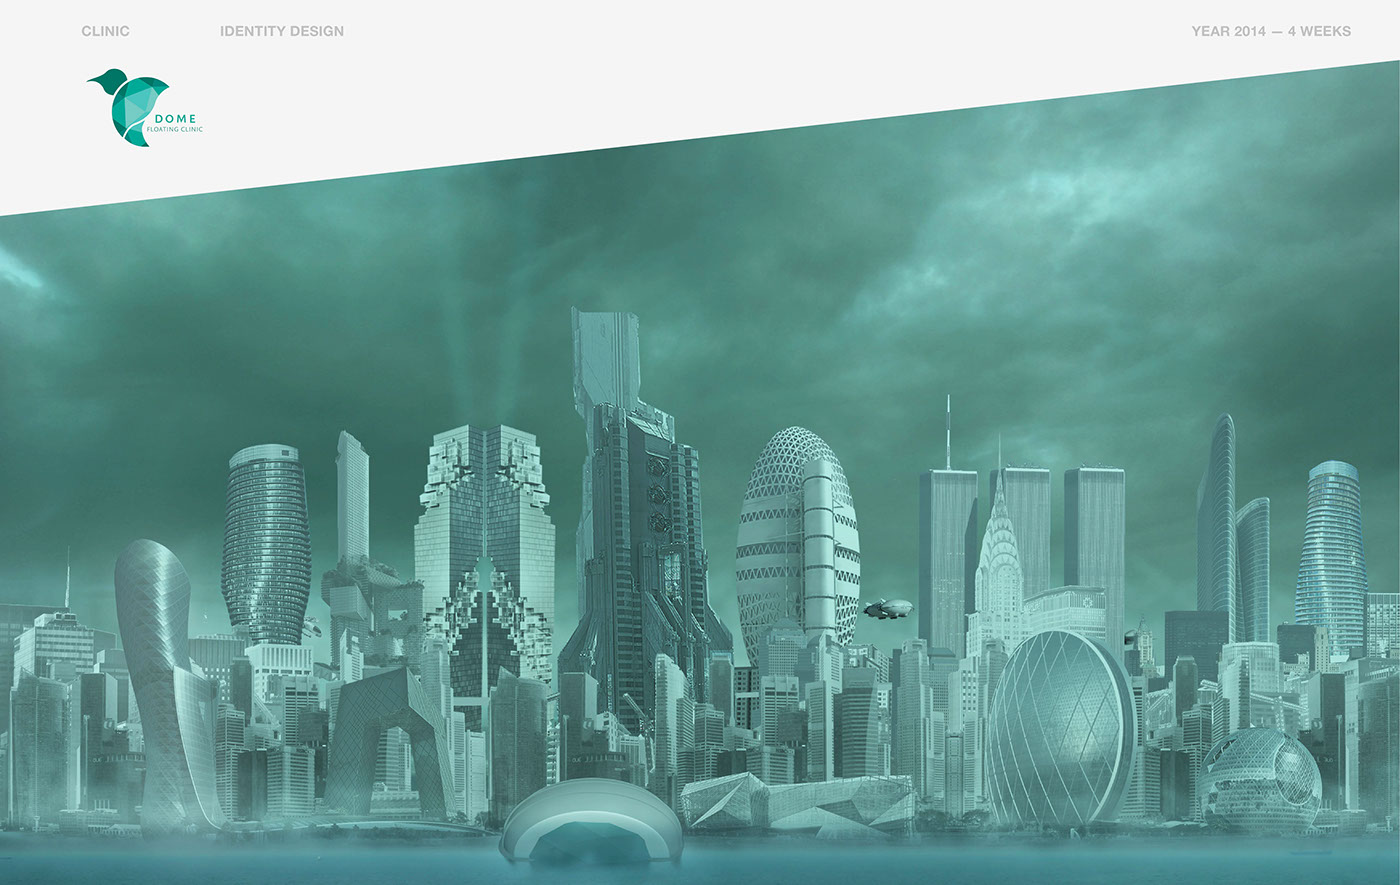 clinic identity campaign futuristic context conceptual imagination 3D building floating dome Sustainable Human Behavior people culture